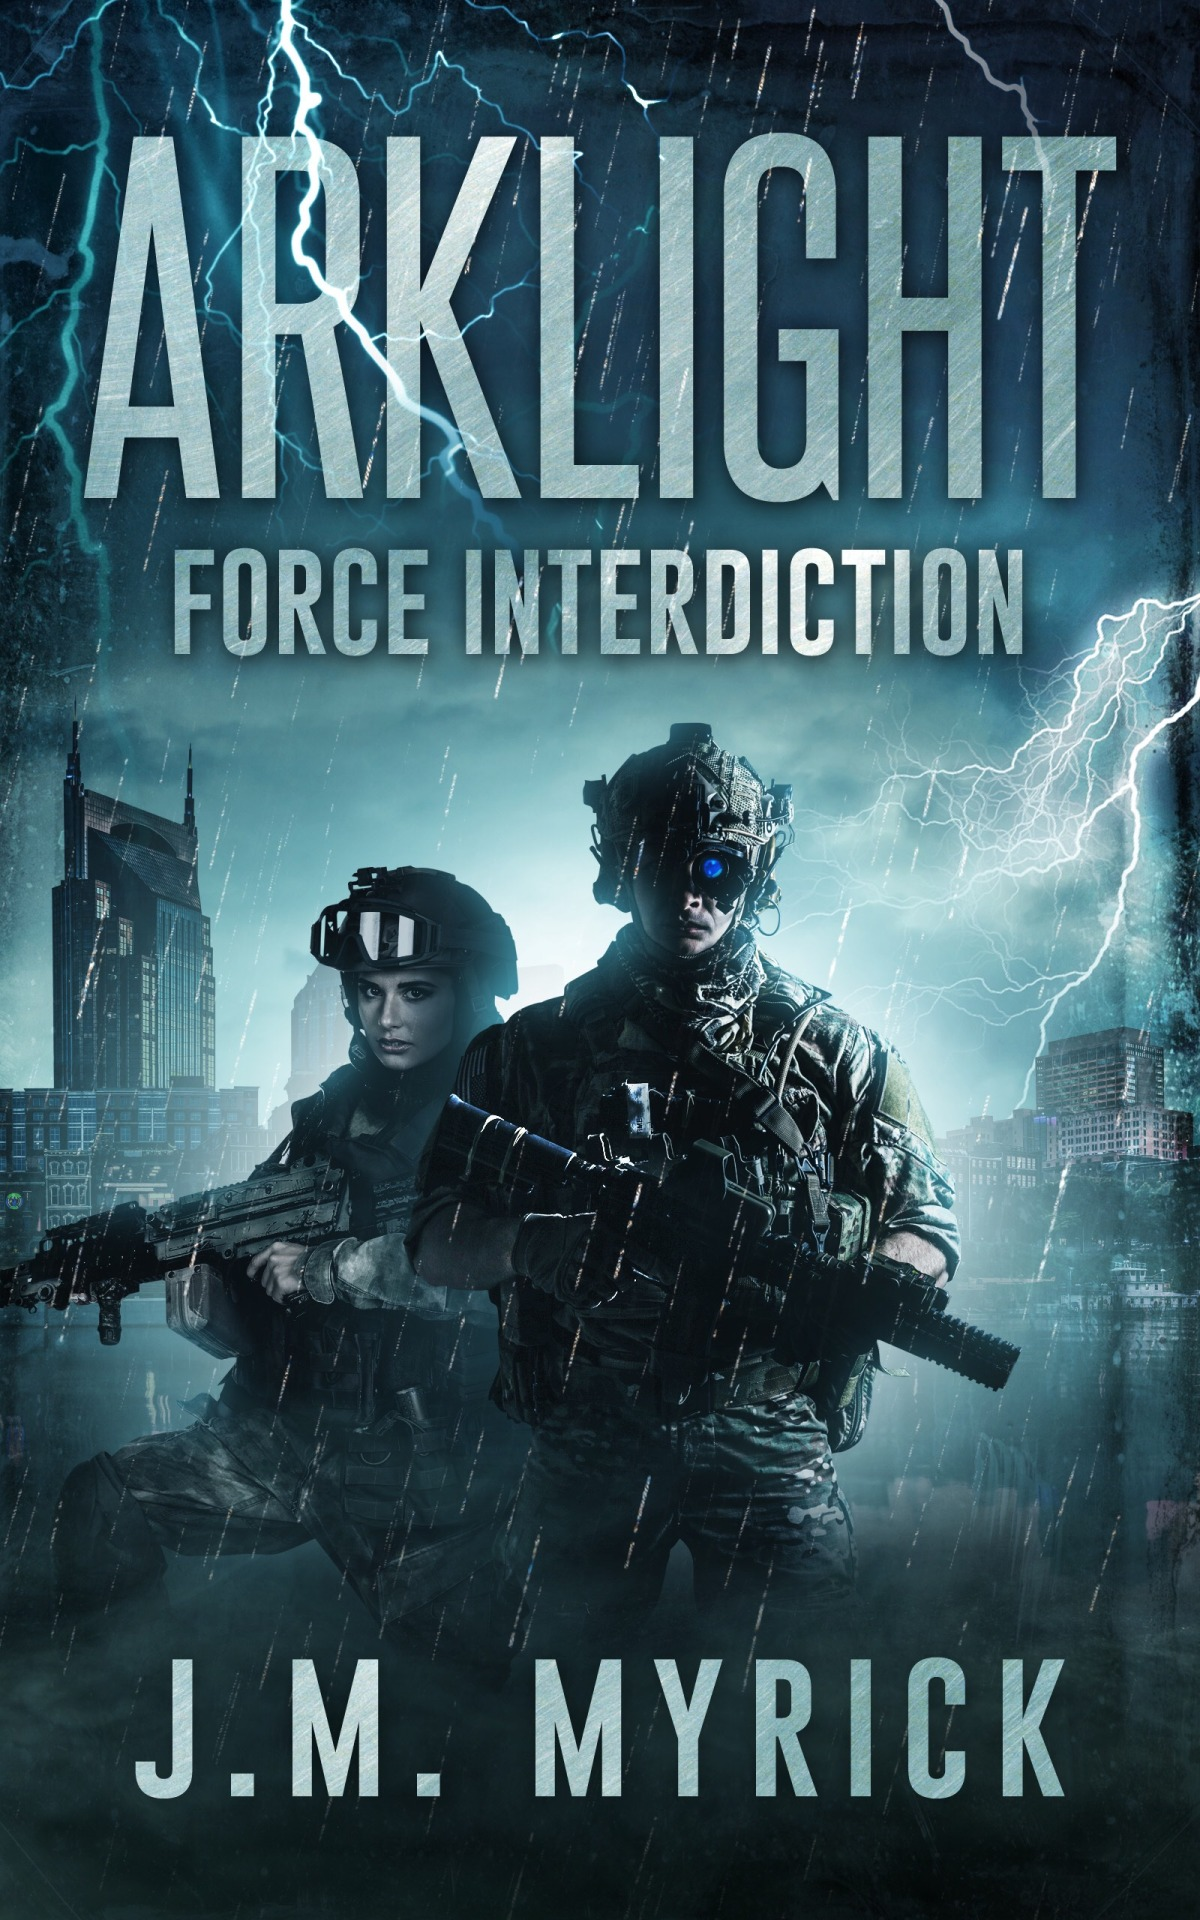 TODAY: Force Interdiction Release!